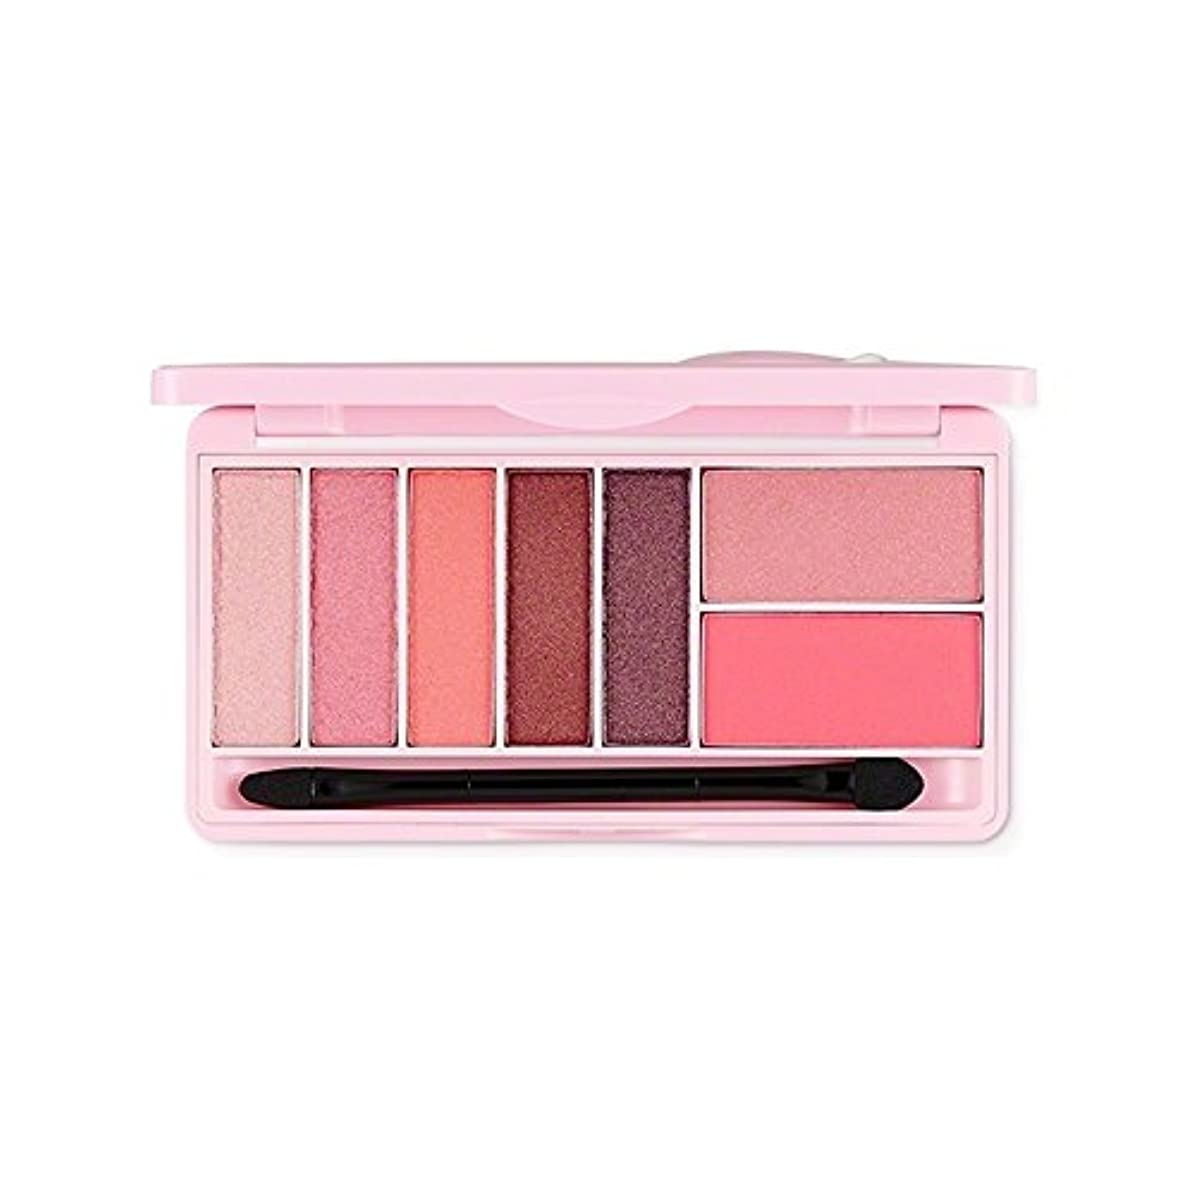 The Face Shop スウィートアペックチャーモノポップアイズ Kakao FriendsThe Face Shop Sweet Apeach Mono Pop Eyes 9.5g/甘いアペサート (Pink Winking...